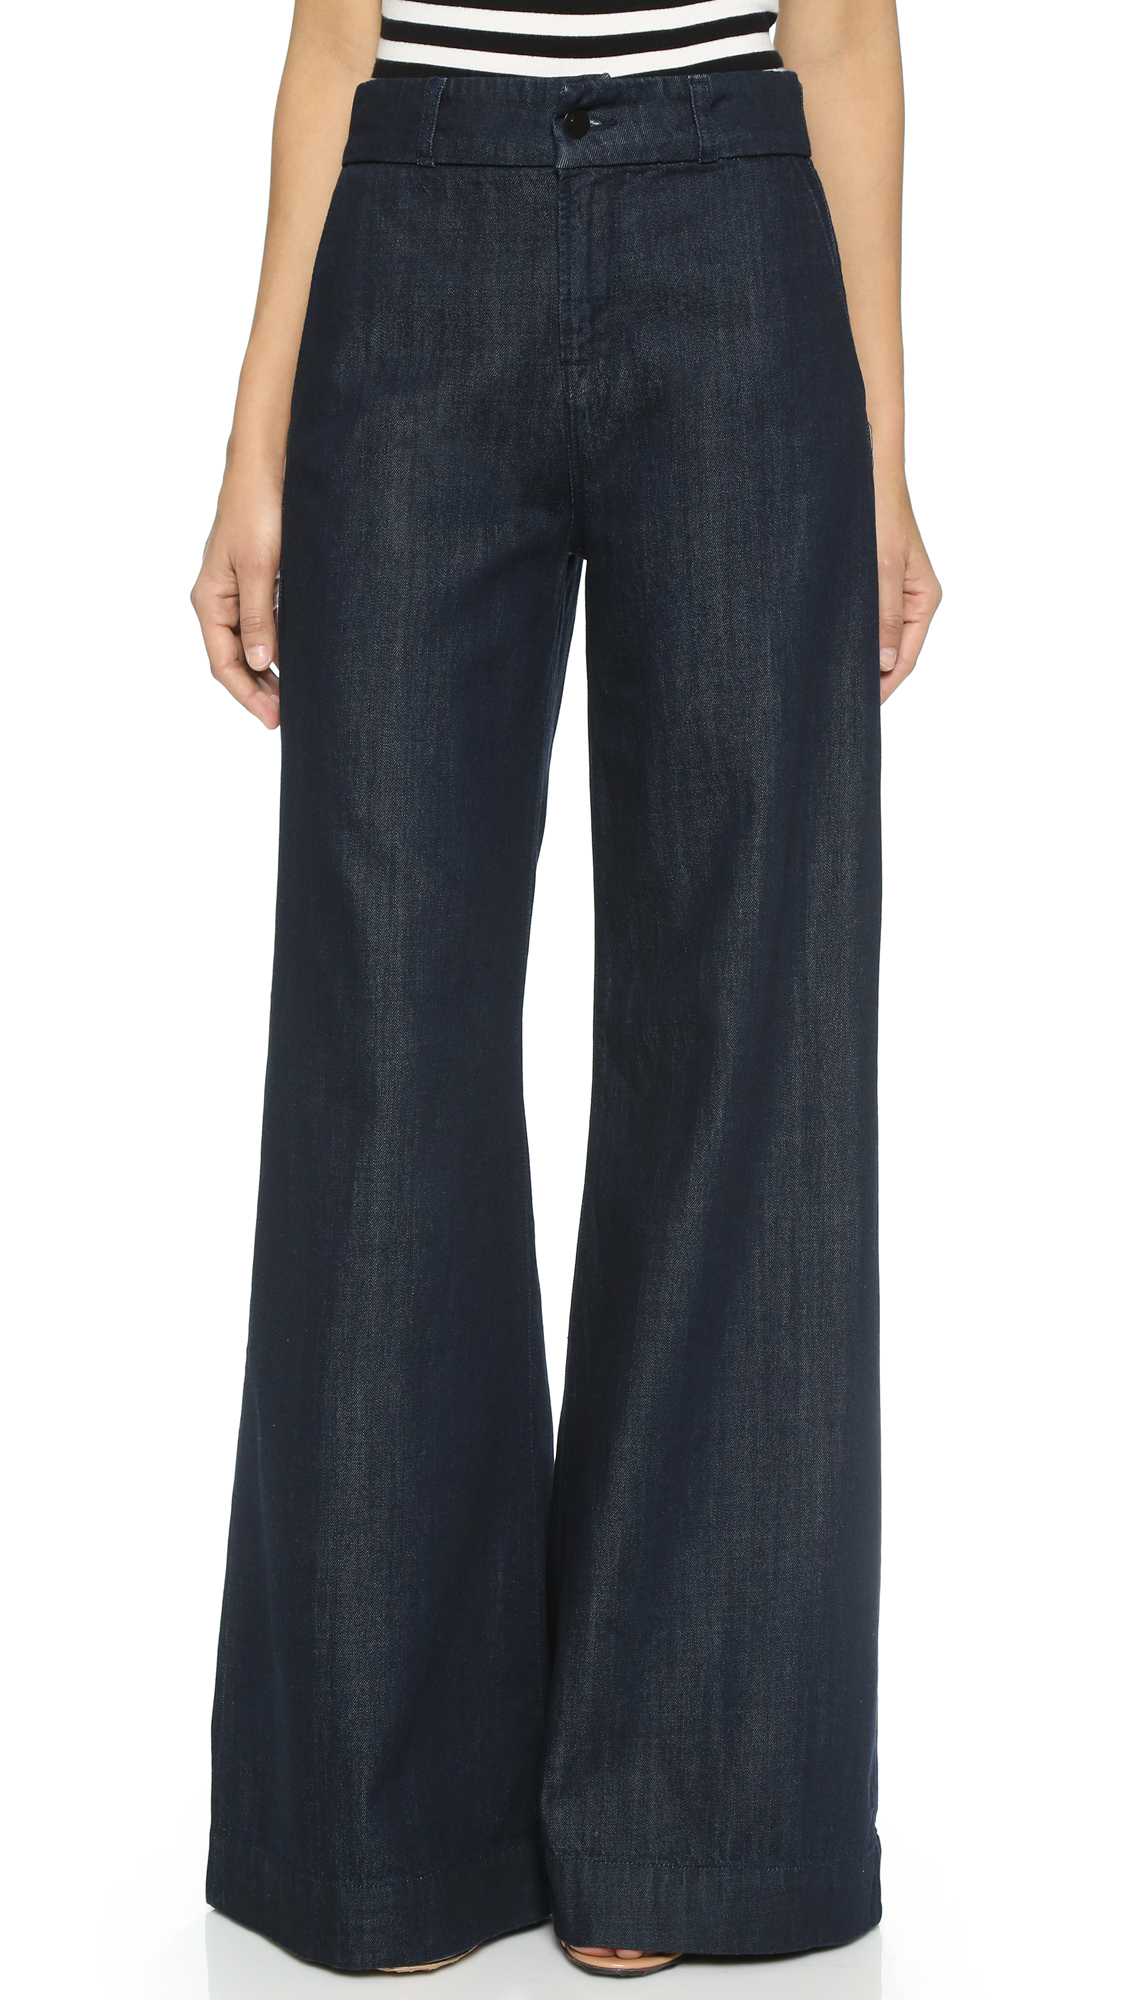 Shop for wide-leg jeans if it's a comfortable, modern look that is appealing. This type of pant is on trend, flattering most body types with a higher waist and wide, flowing leg. This type of pant is on trend, flattering most body types with a higher waist and wide, flowing leg.